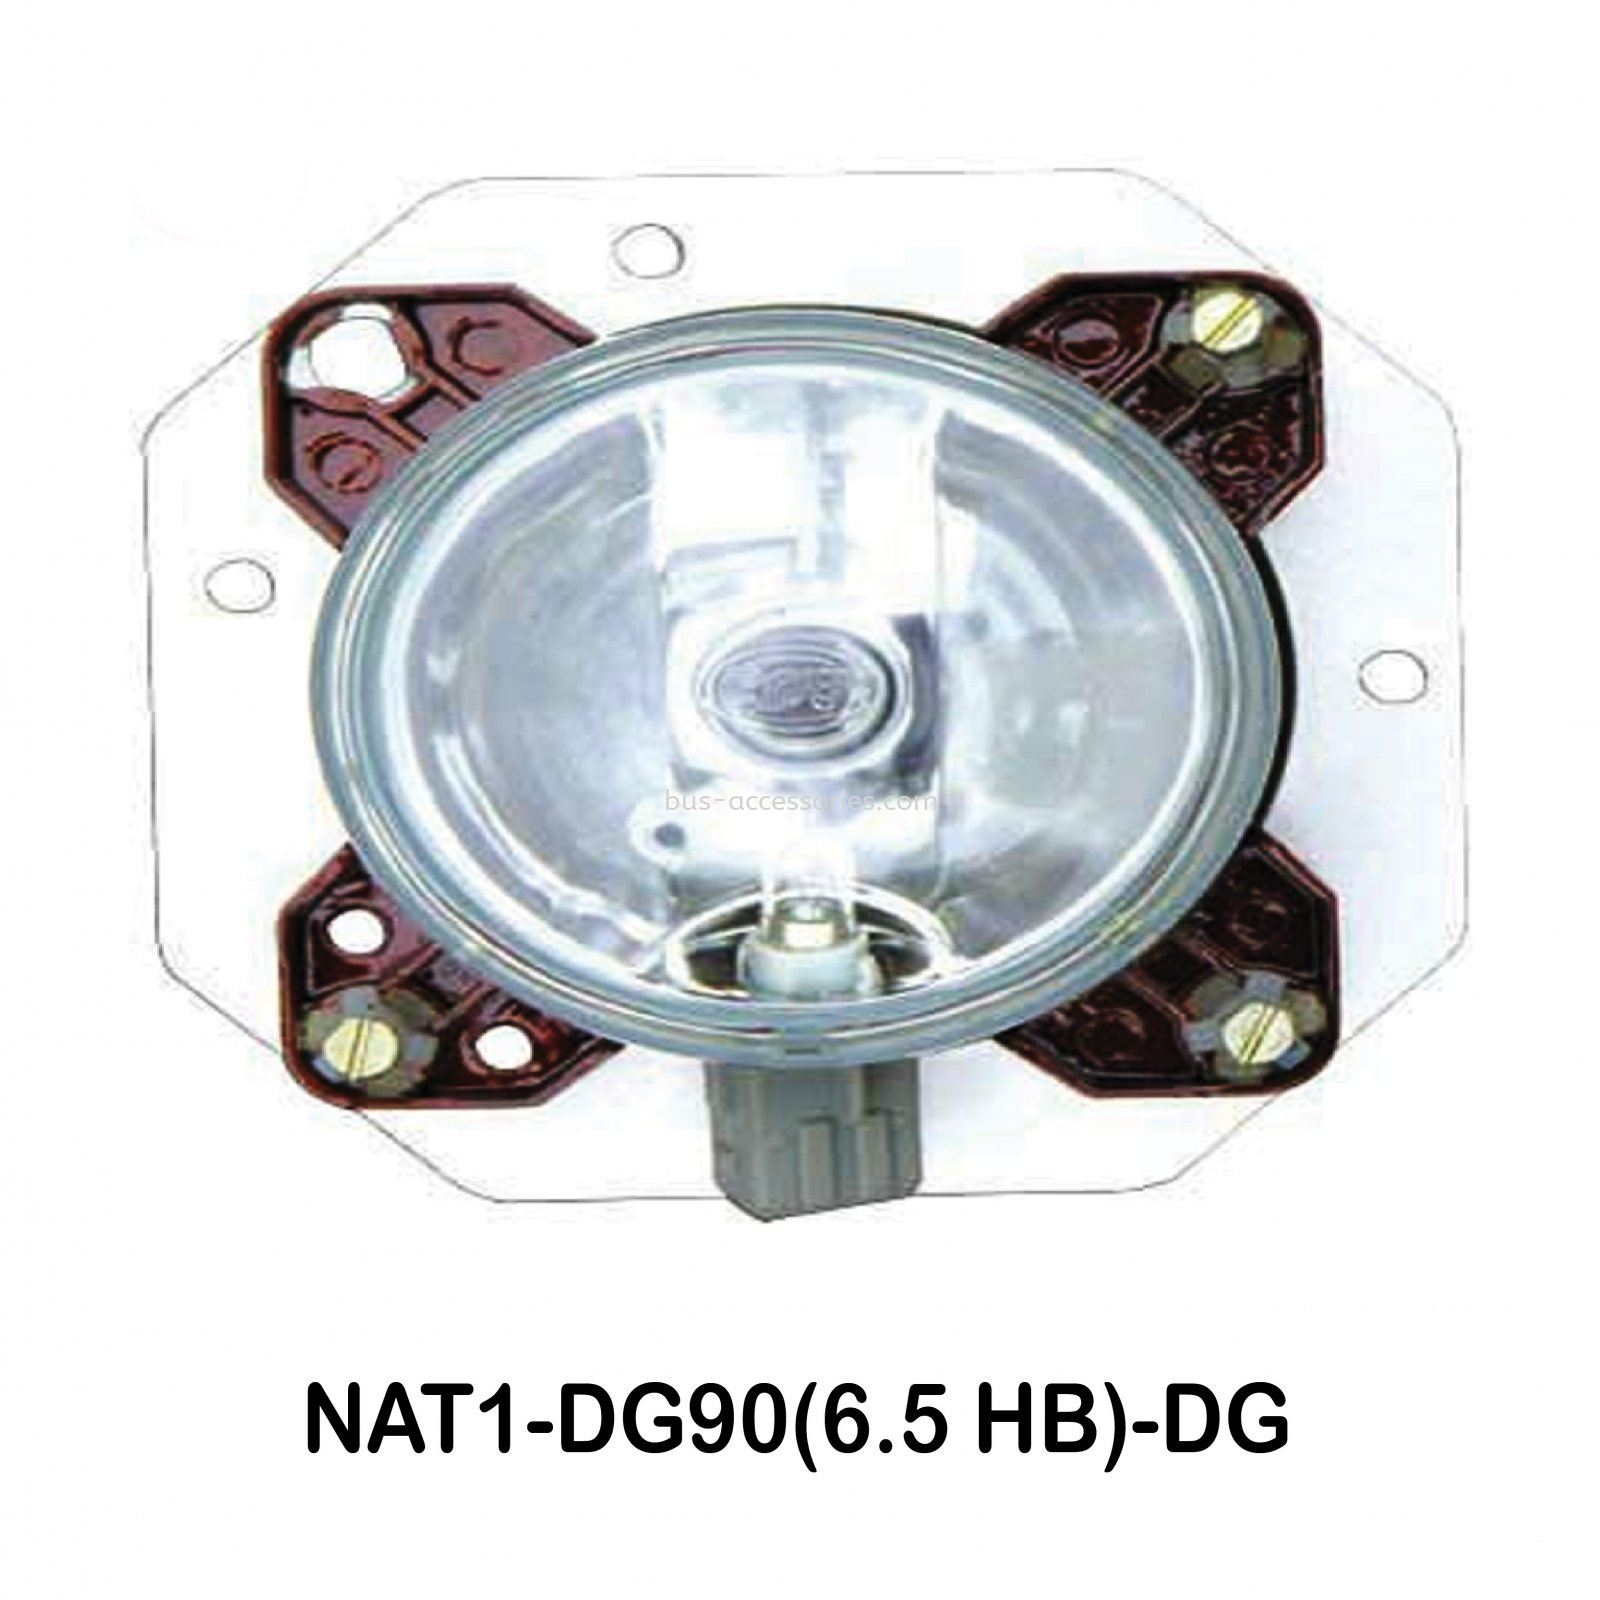 HEADLAMP HB DG90